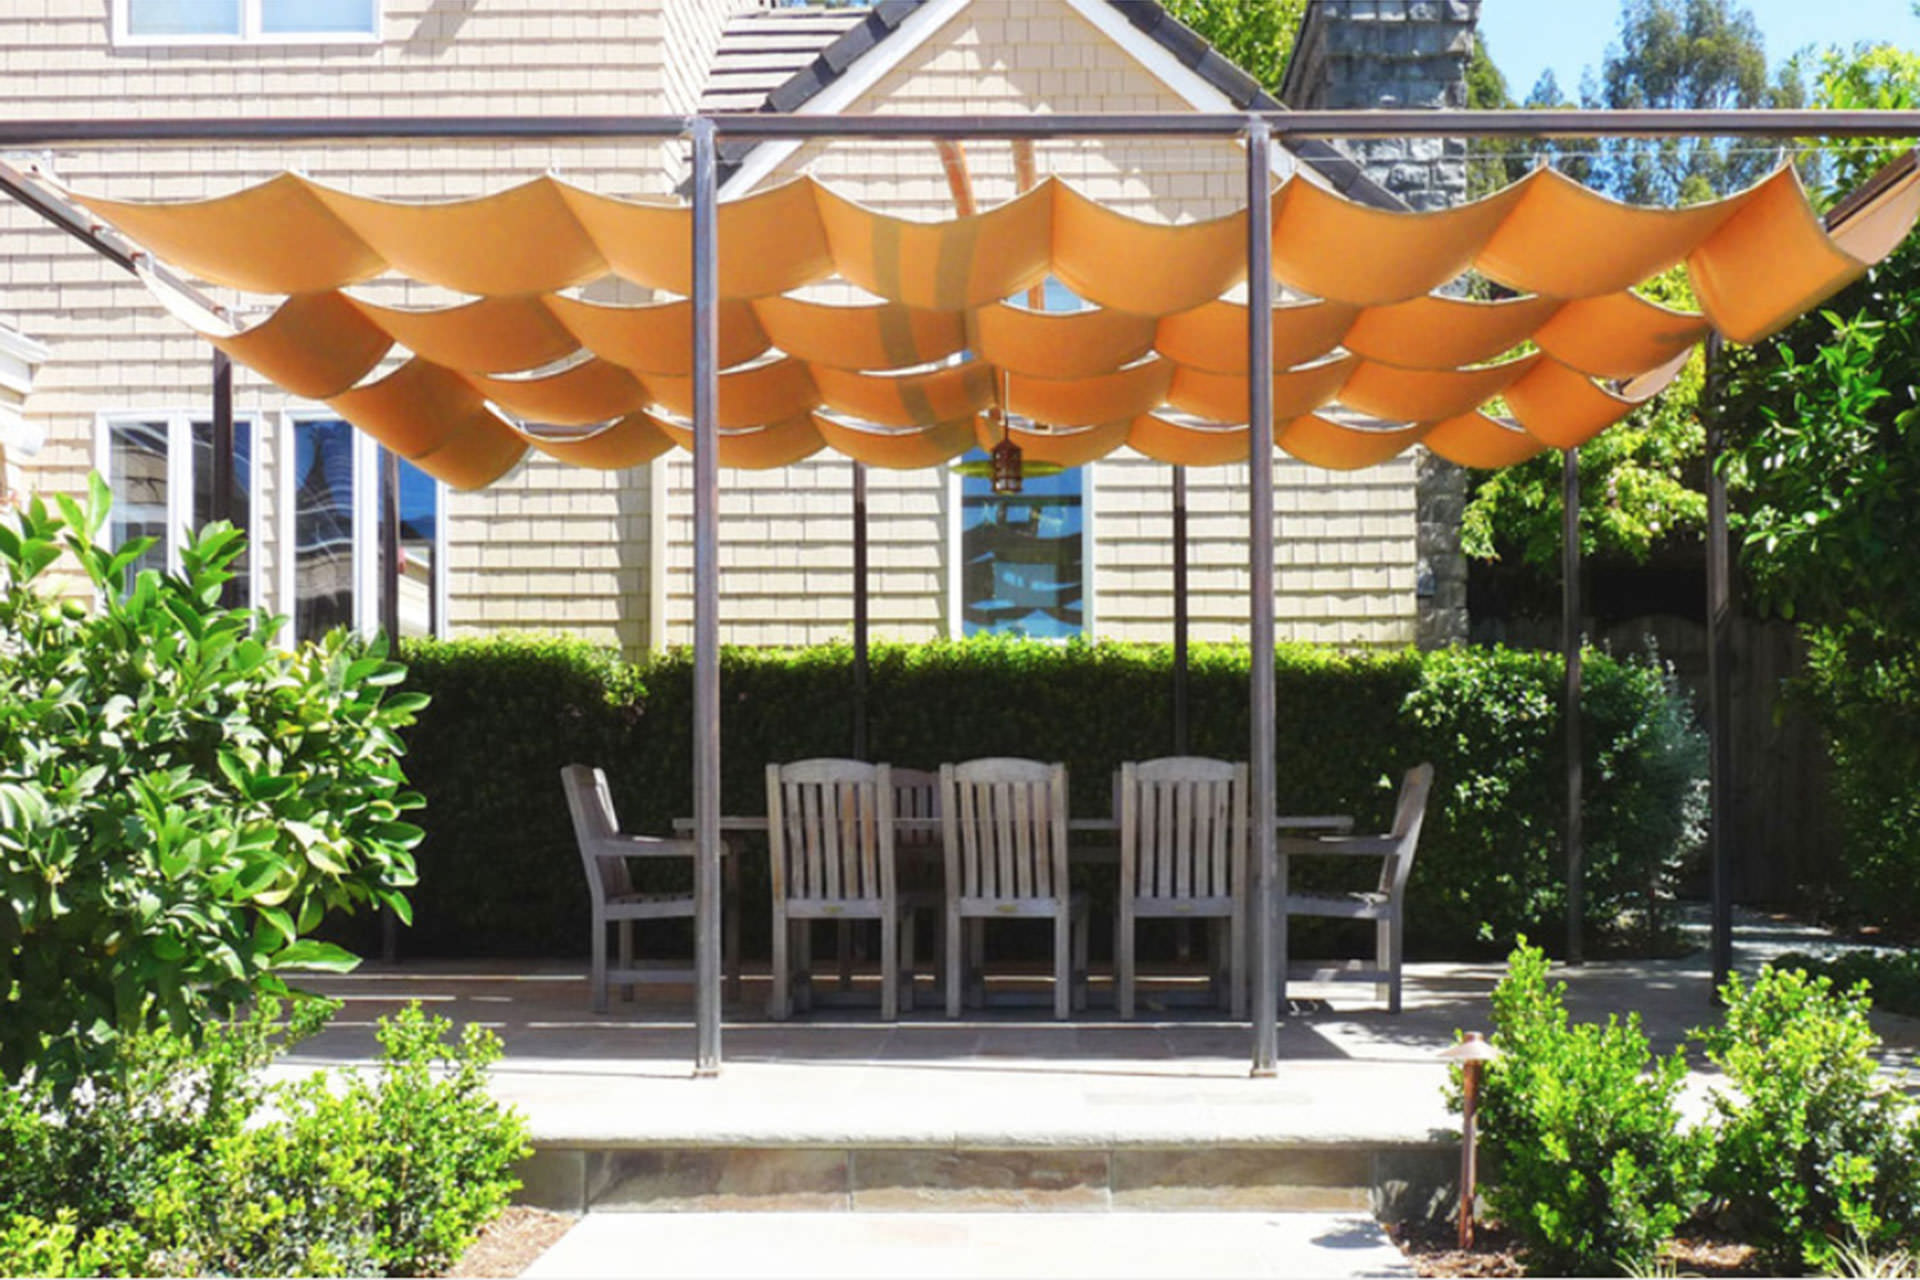 Wire Cable Patio Awnings Center Network Solutions Nottinghamleicesterderby All About Wiring Diagram Choosing A Retractable Canopy Track Single Multi Or Roll Rh Retractsolutions Com Diy Awning